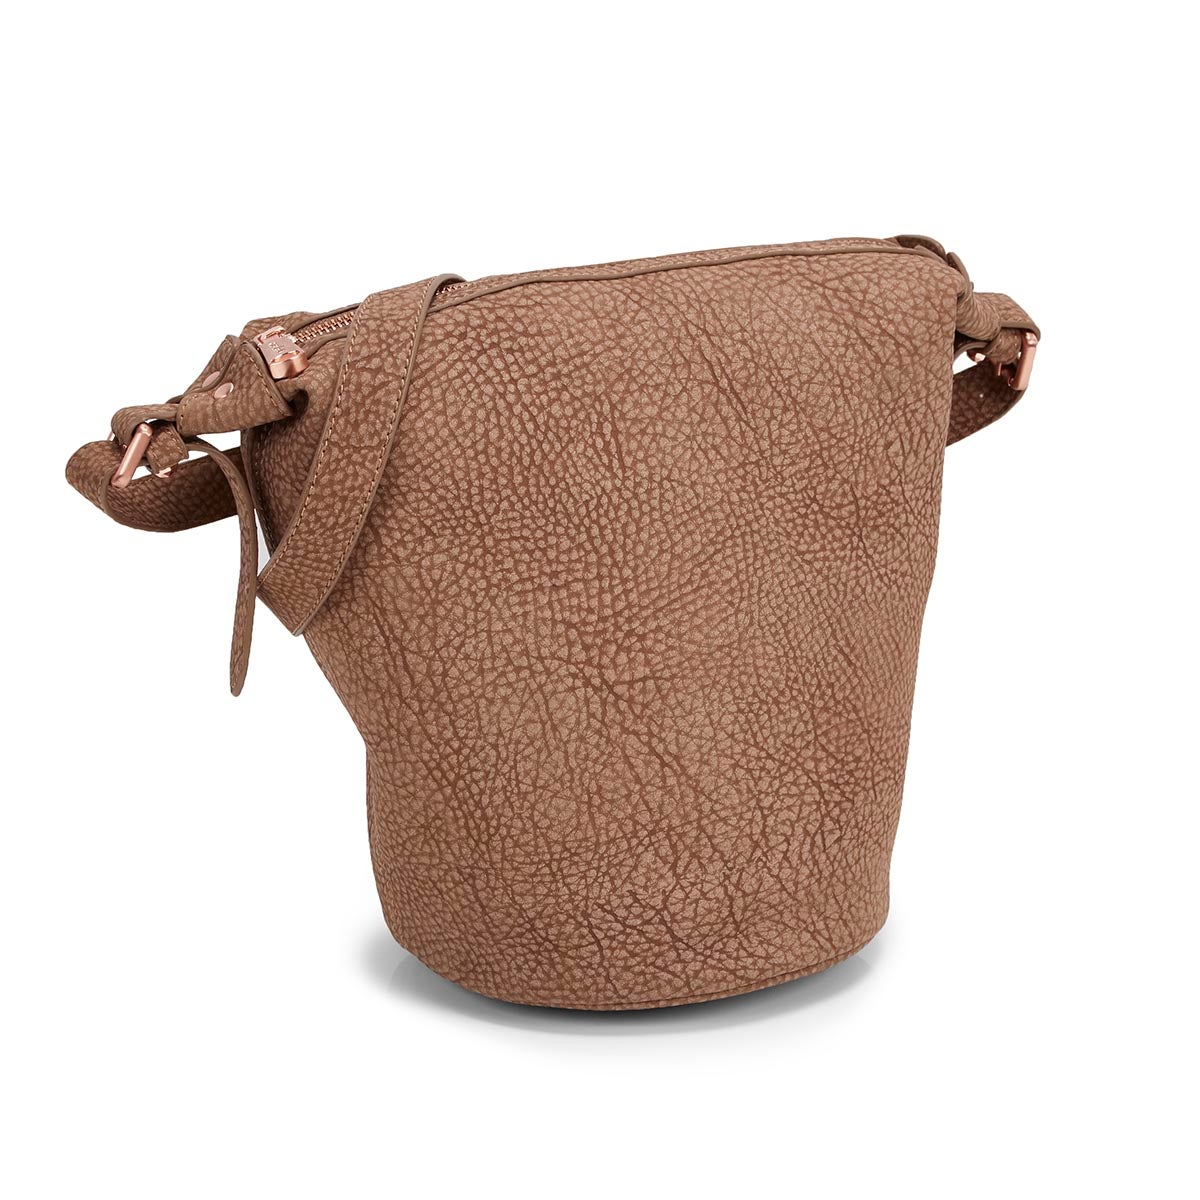 Lds sand bucket cross body bag